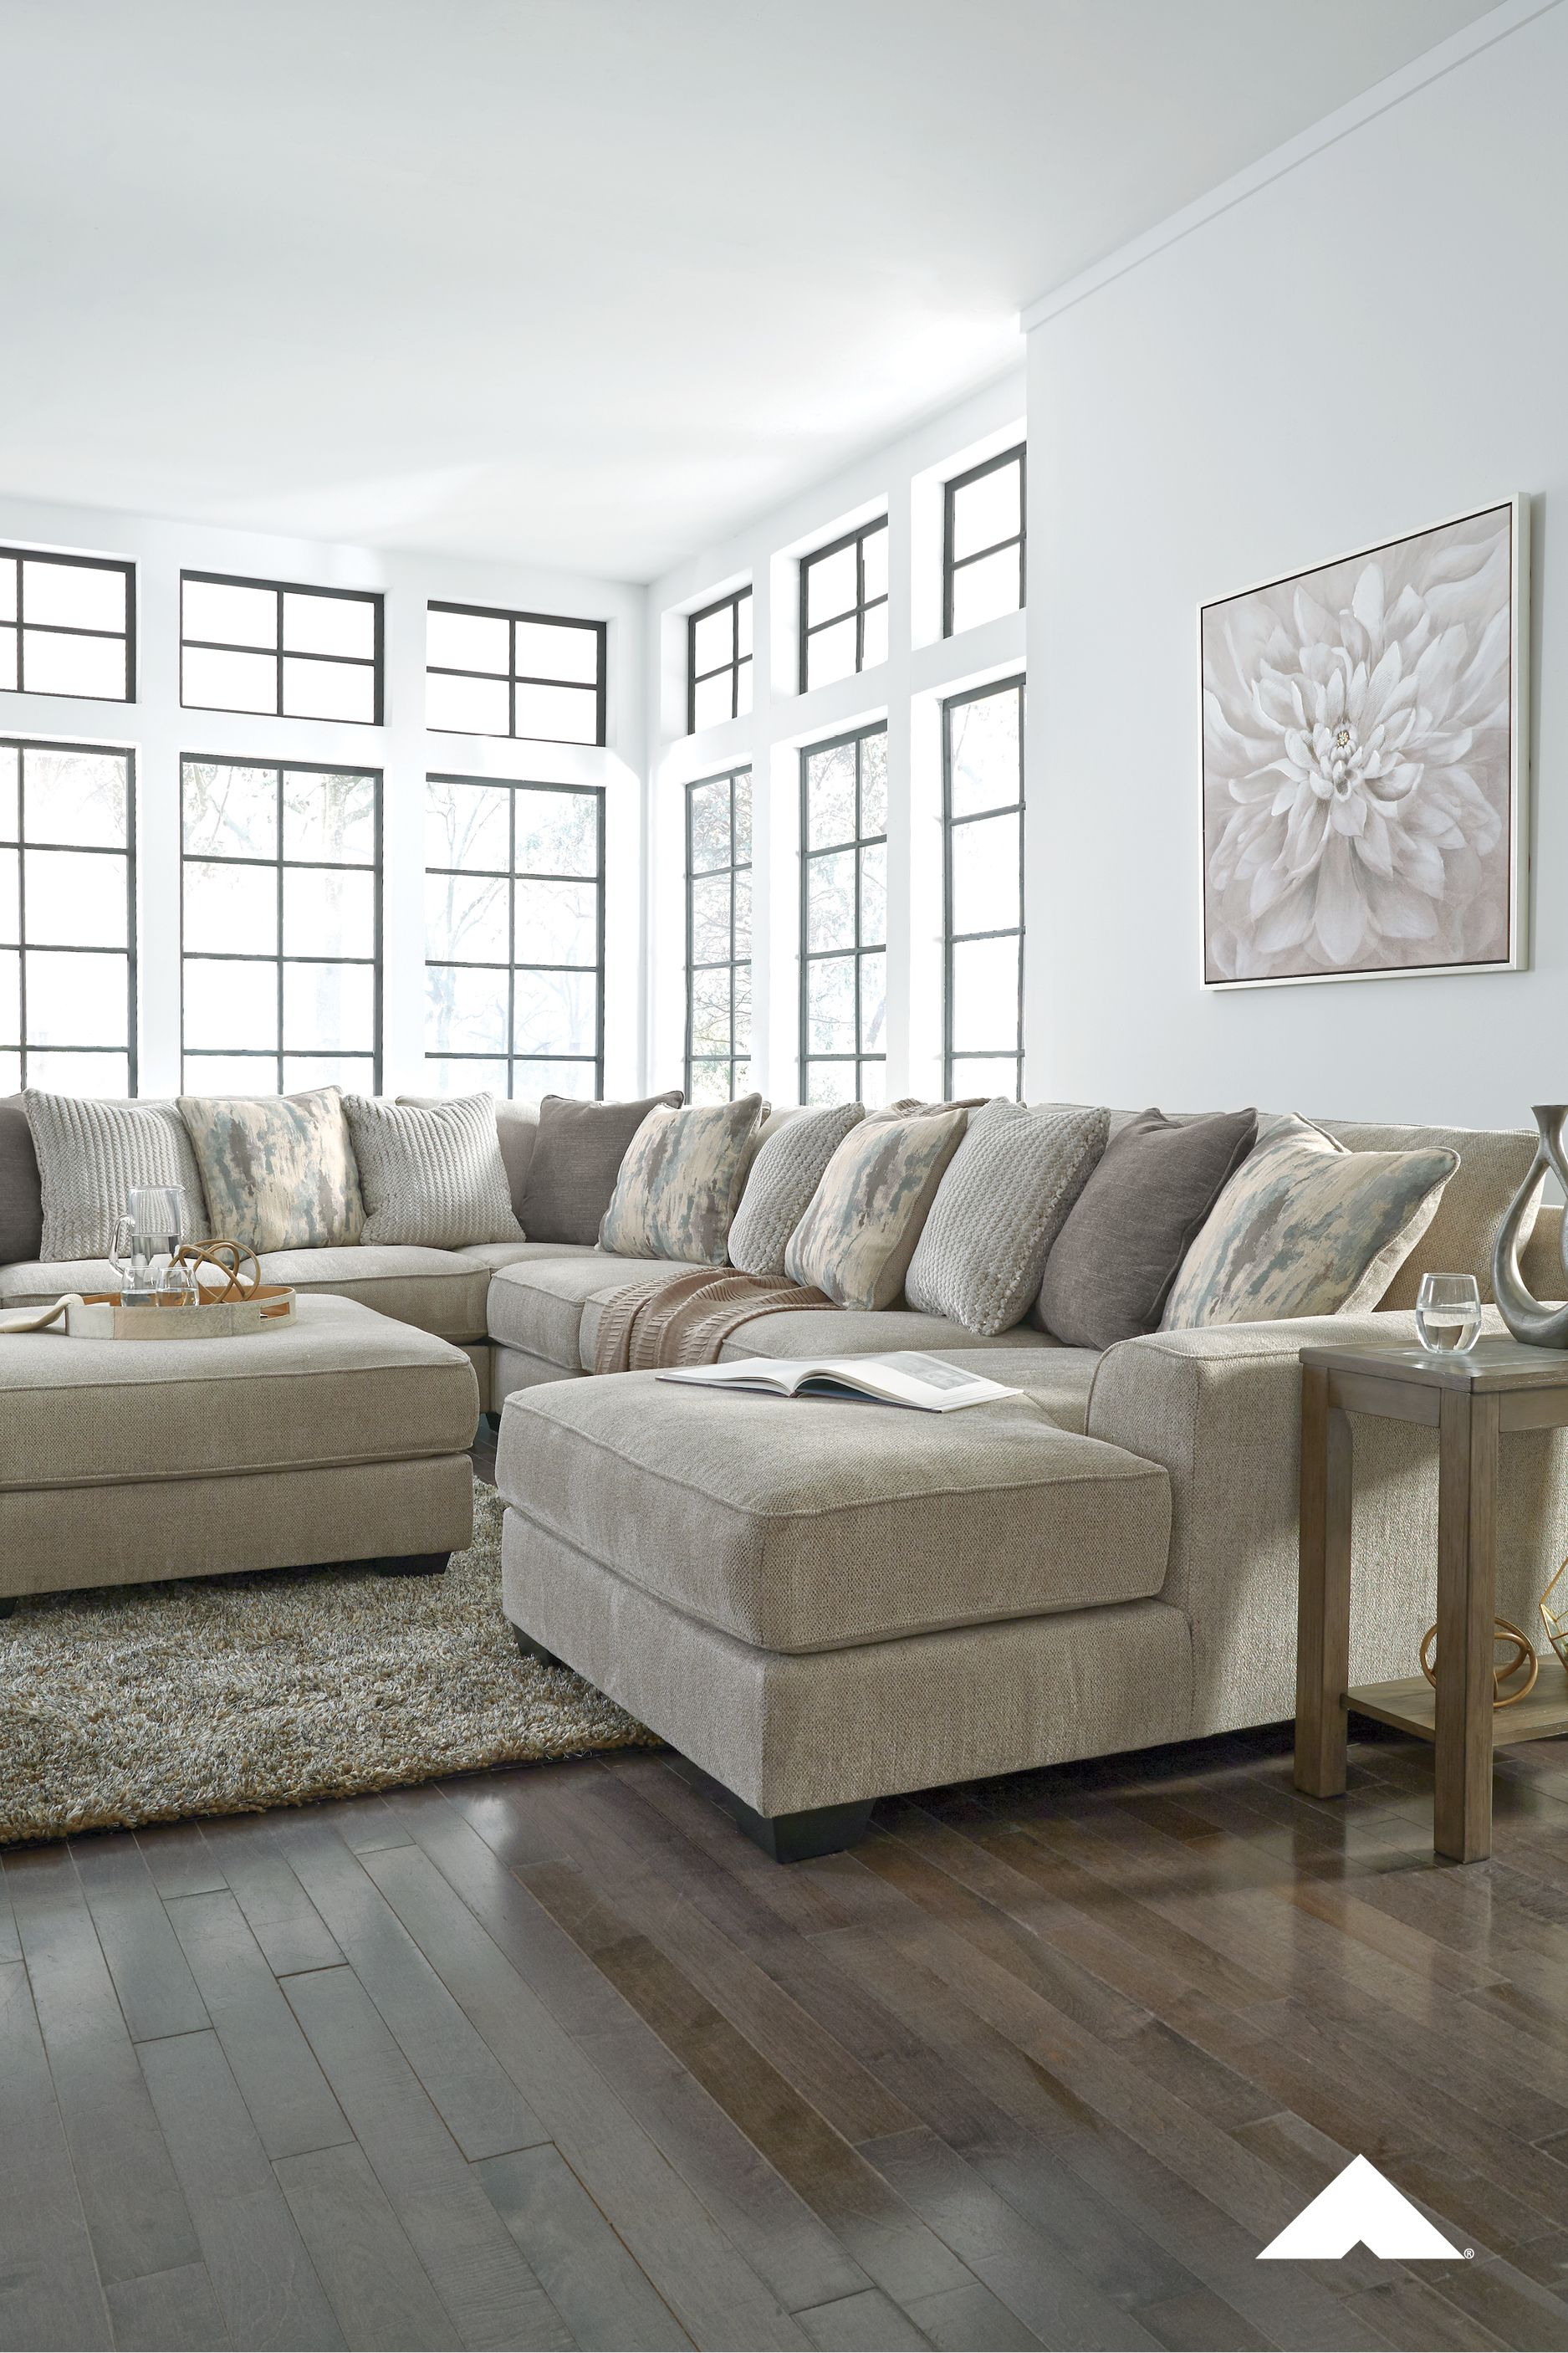 Ardsley Pewter Sectional From Ashley Furniture Plush And Posh The Ardsle Ashley Furniture Living Room Ashley Furniture Sectional Beige Sectional Living Room